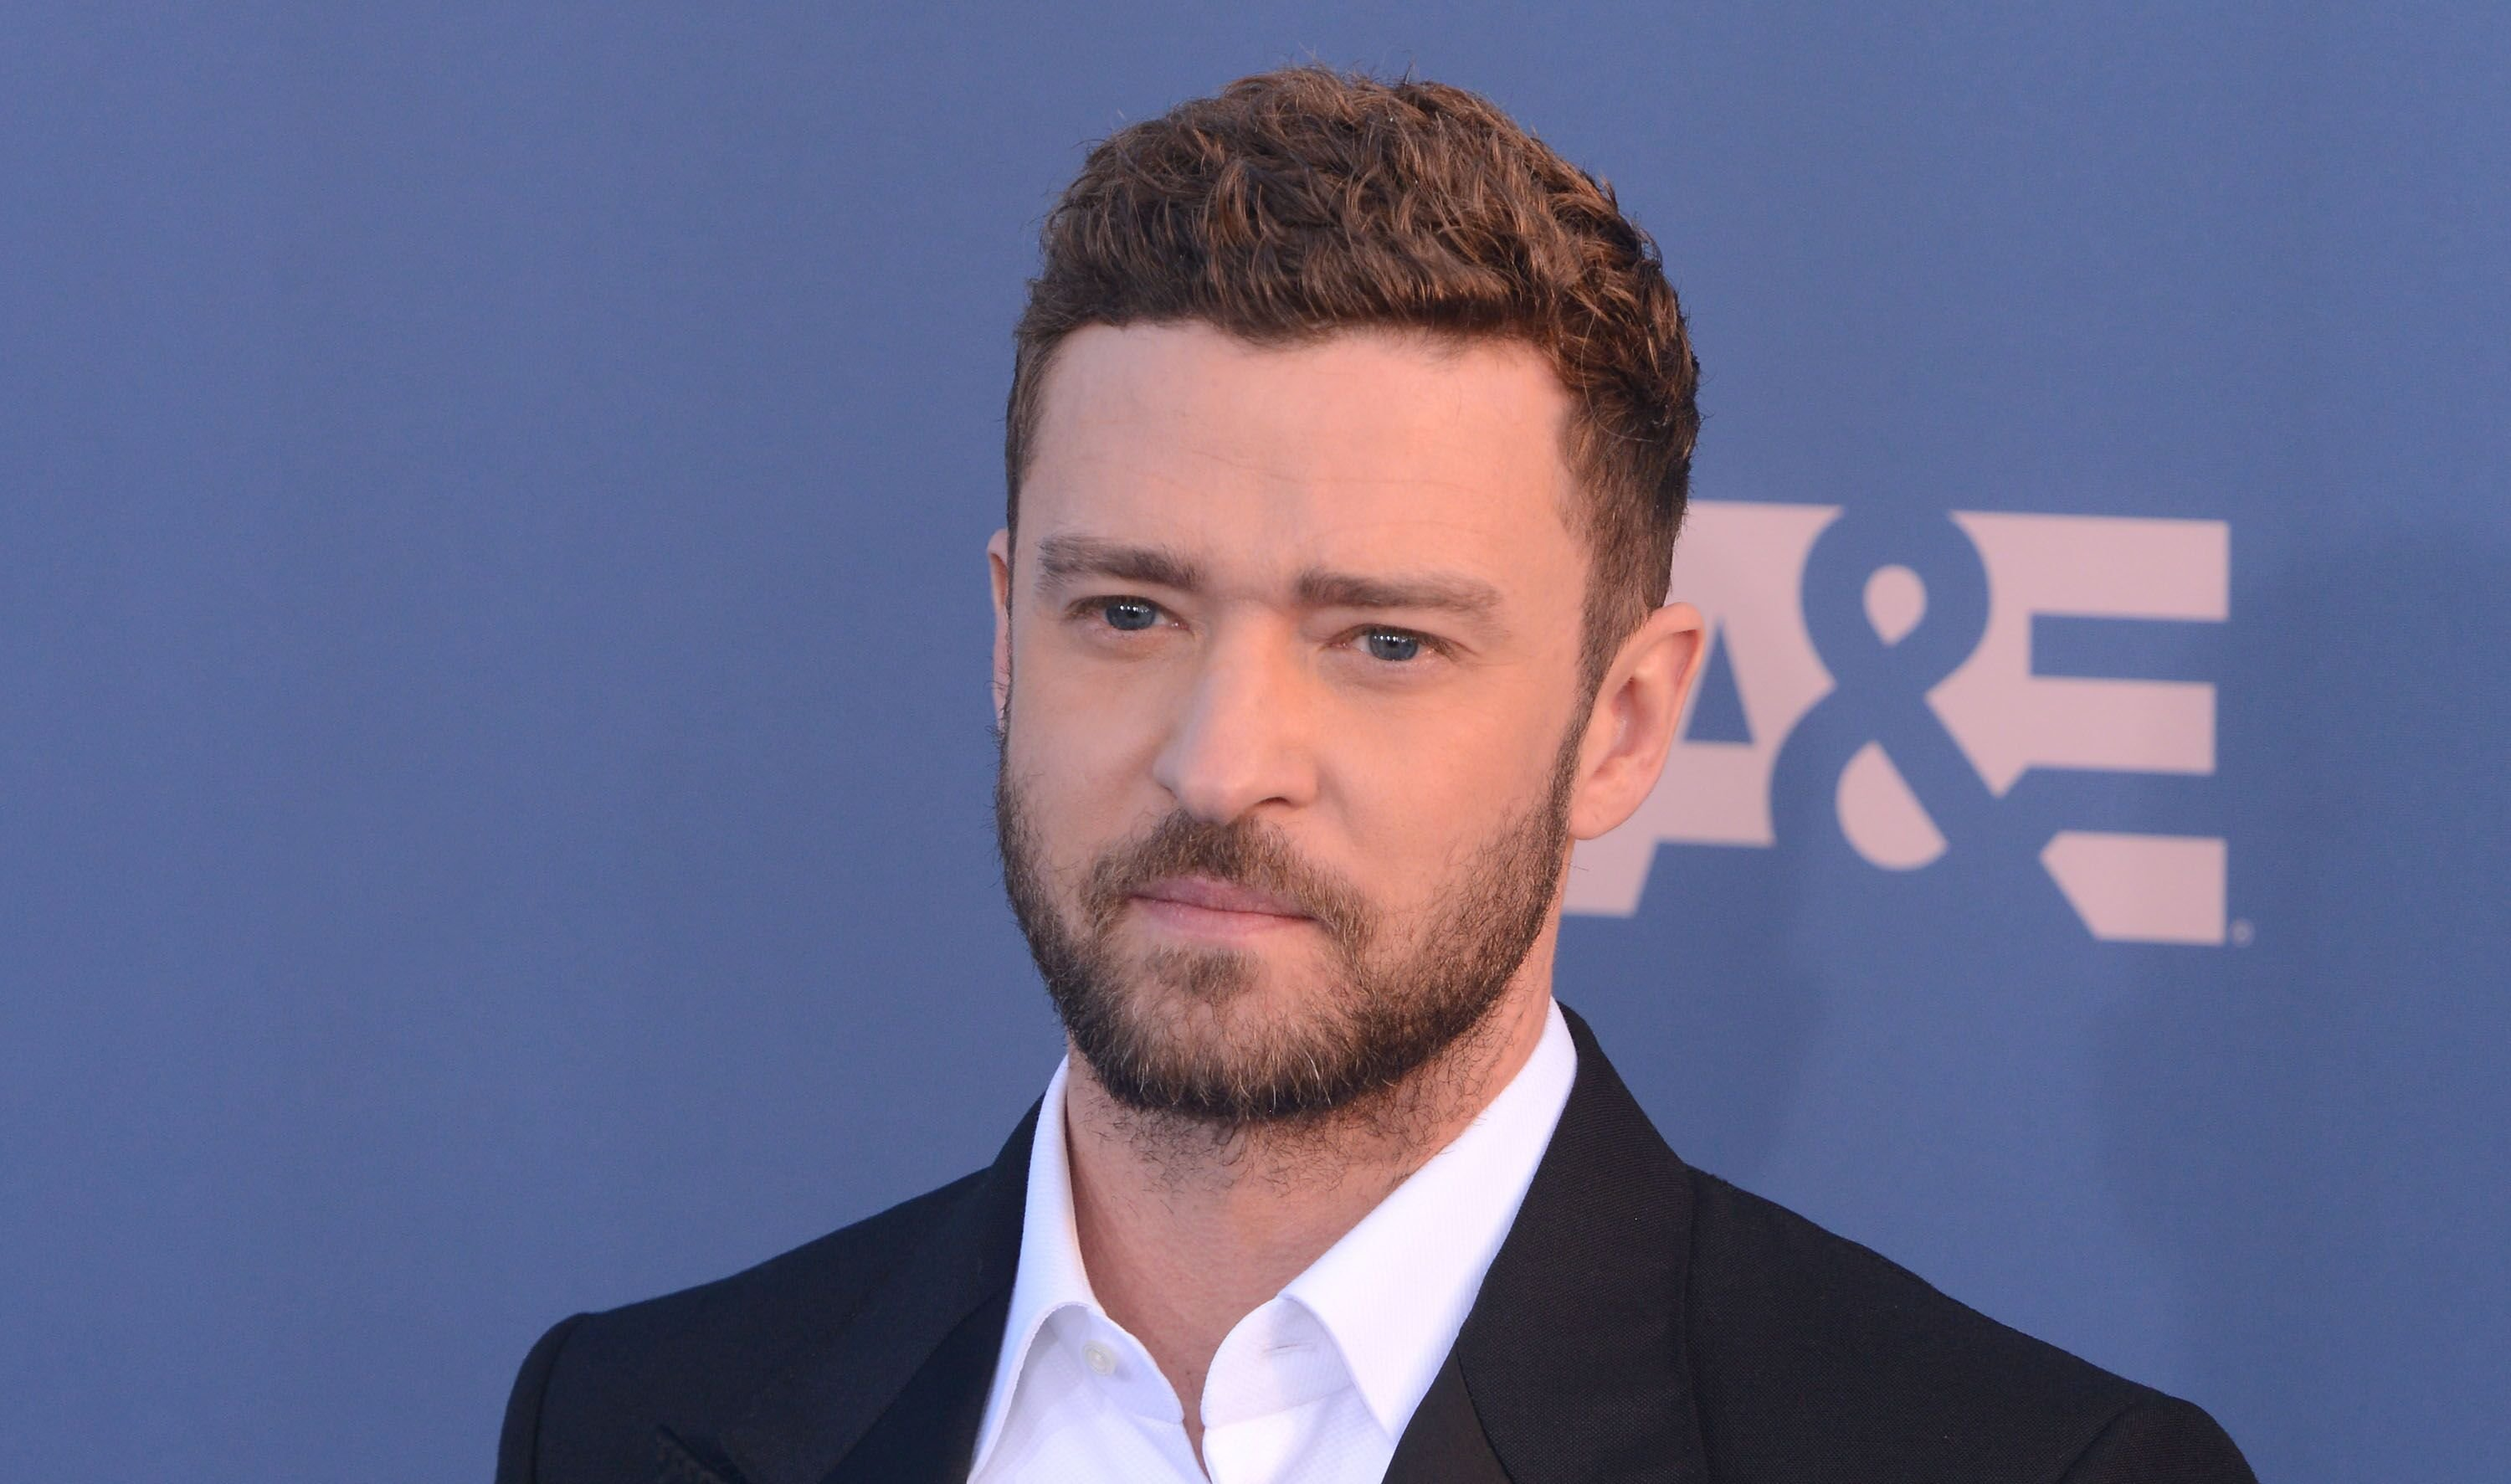 Justin Timberlake arrives at The 22nd Annual Critics' Choice Awards at Barker Hangar in Santa Monica, California. | Photo: Getty Images